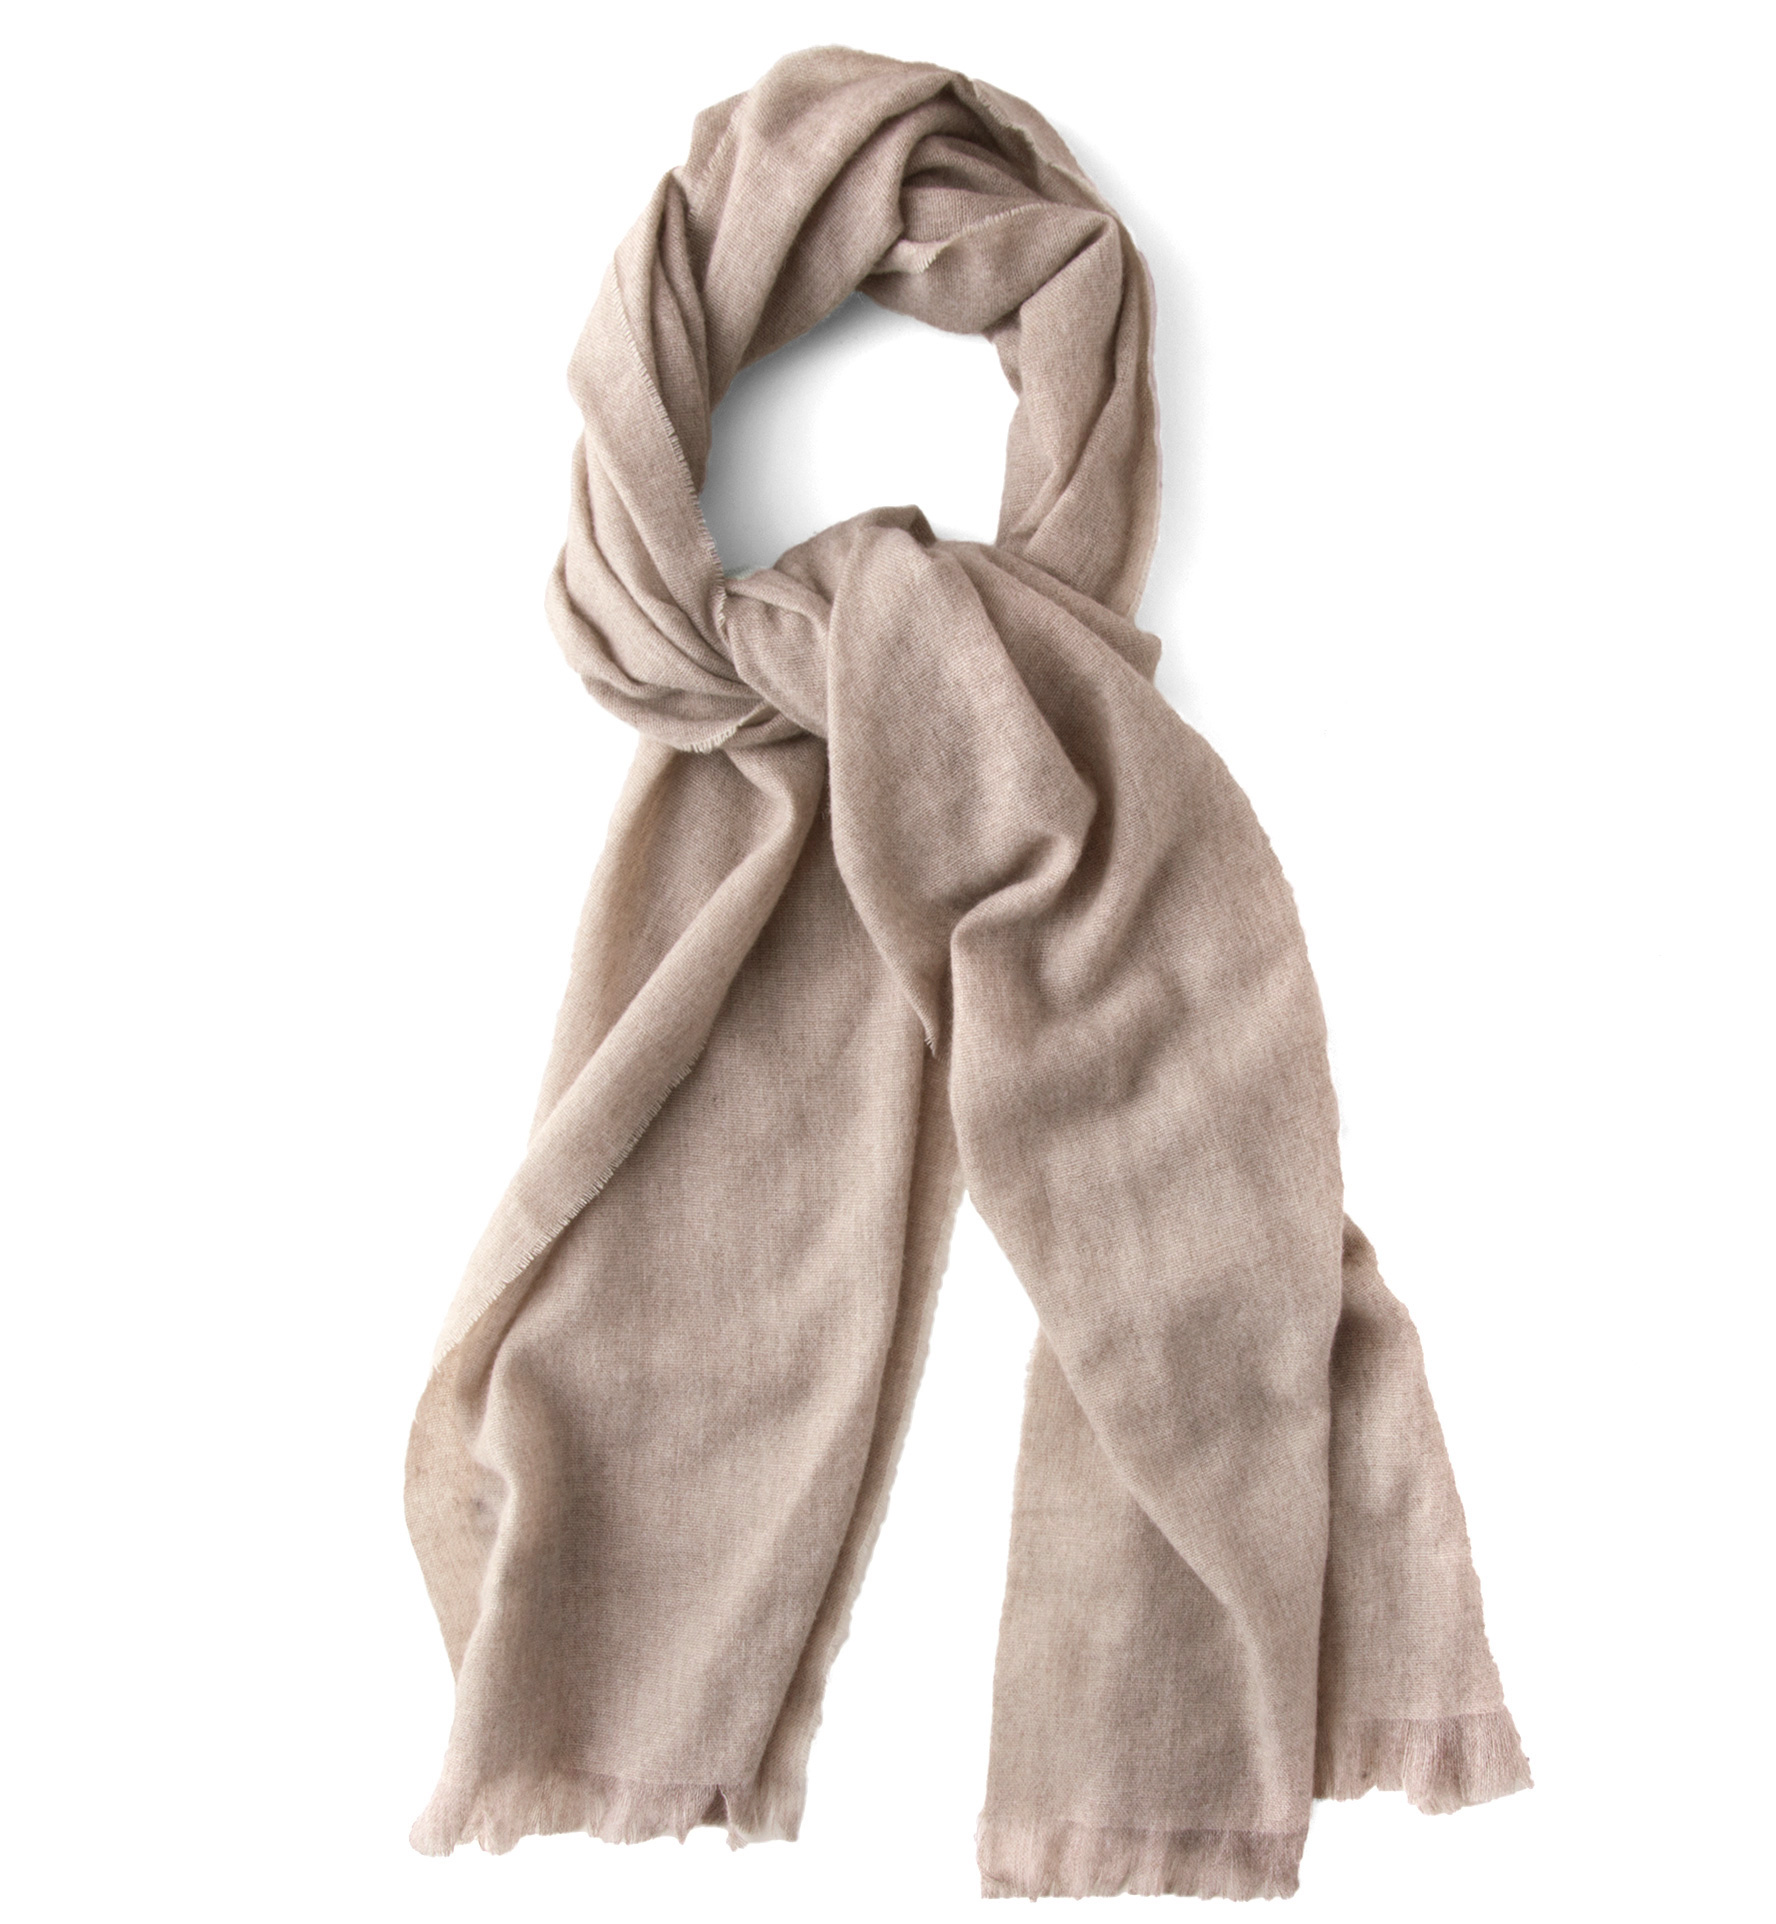 Zoom Image of Beige Italian Cashmere Scarf